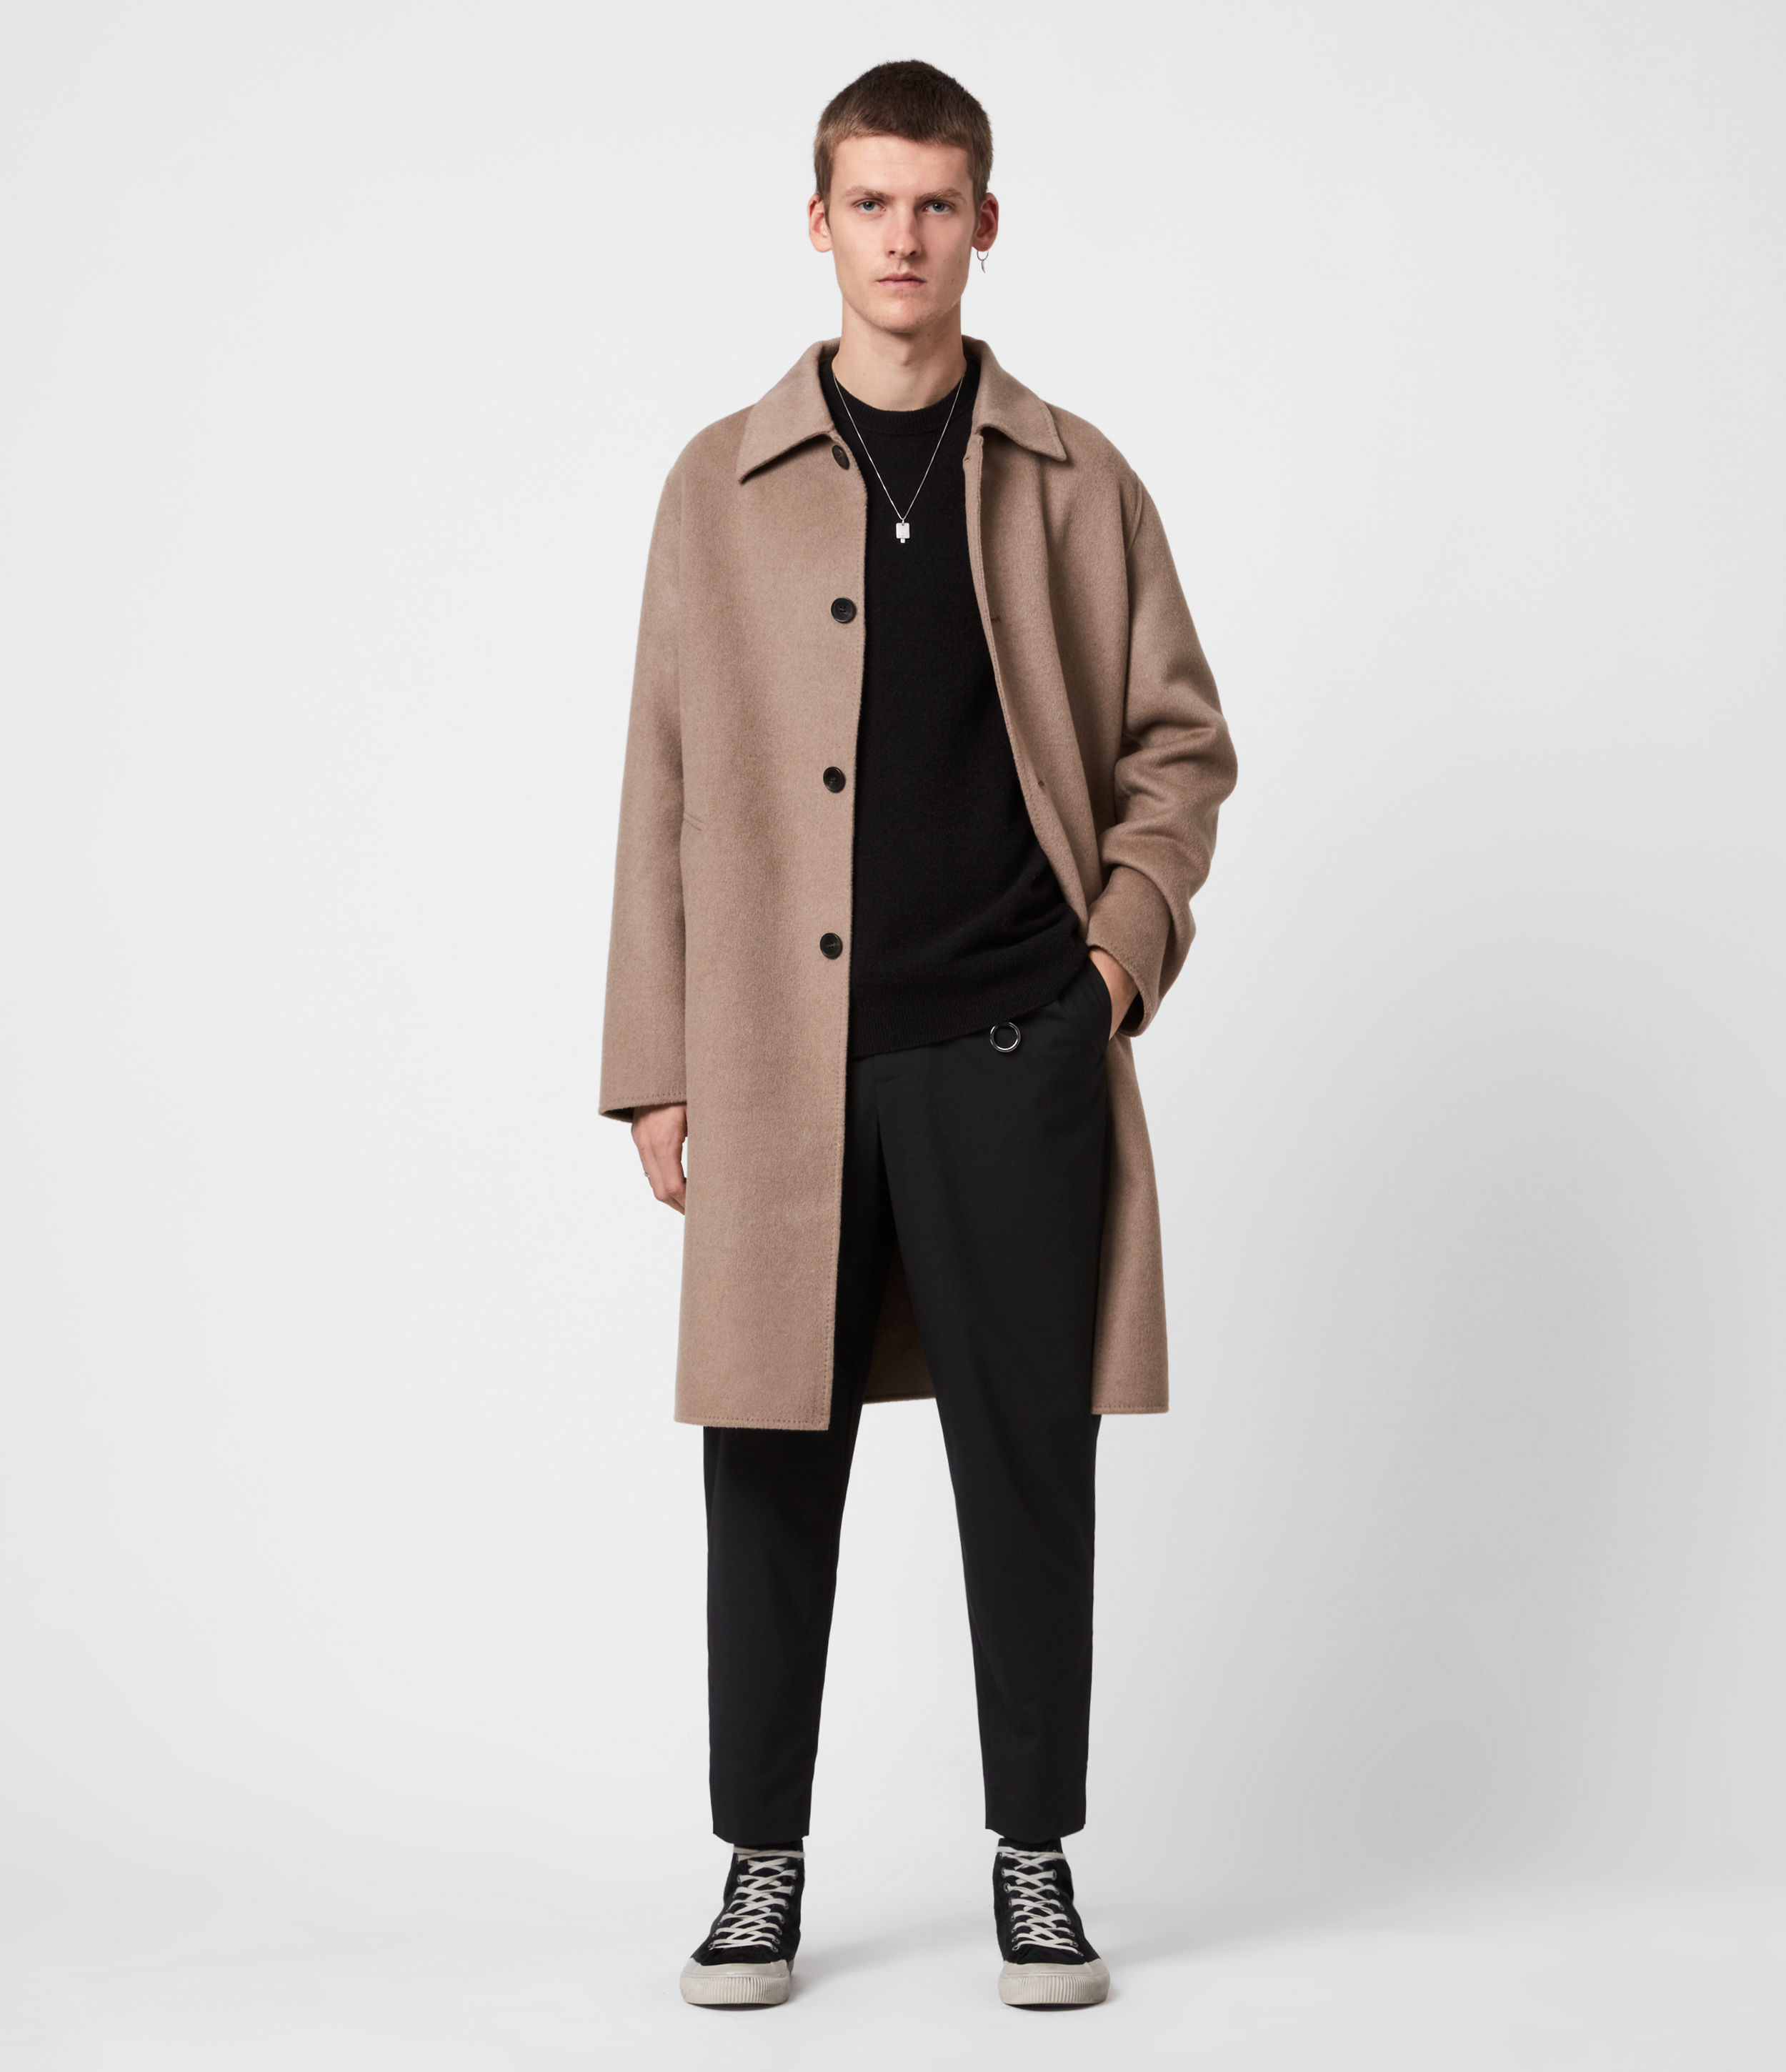 AllSaints Mens Adler Wool Blend Coat, Fawn Brown, Size: 42